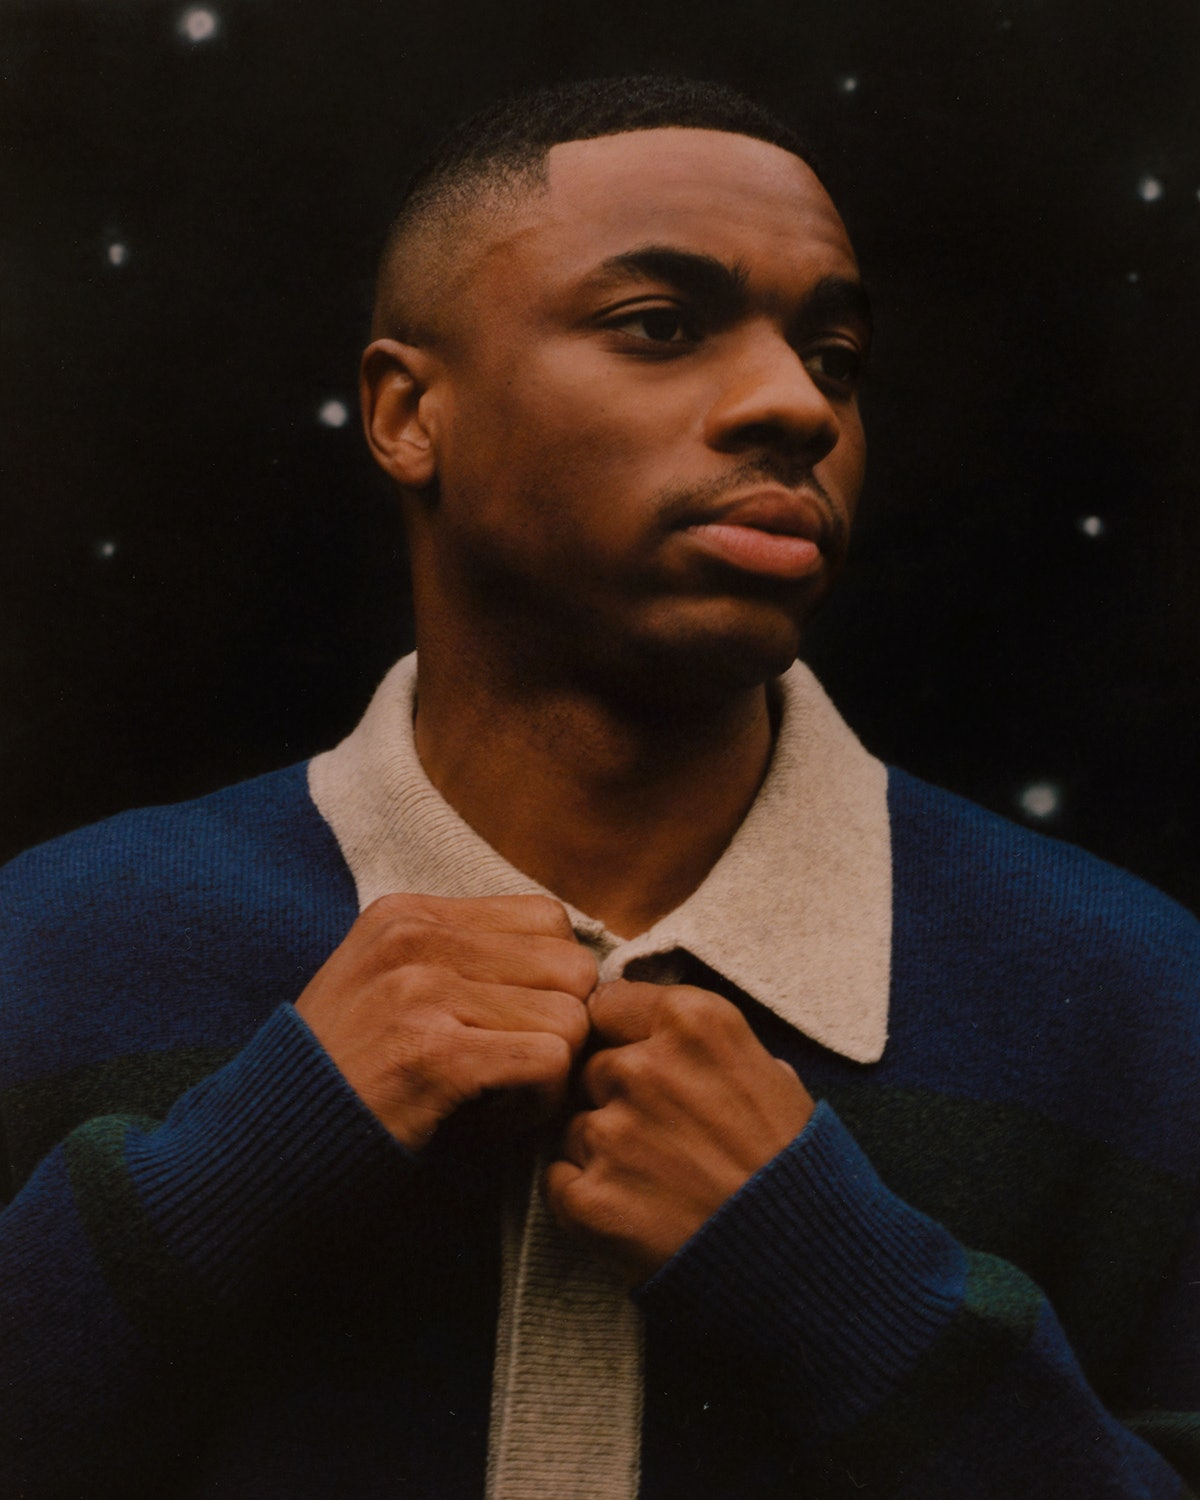 Vince Staples wears an Isabel Marant sweater.